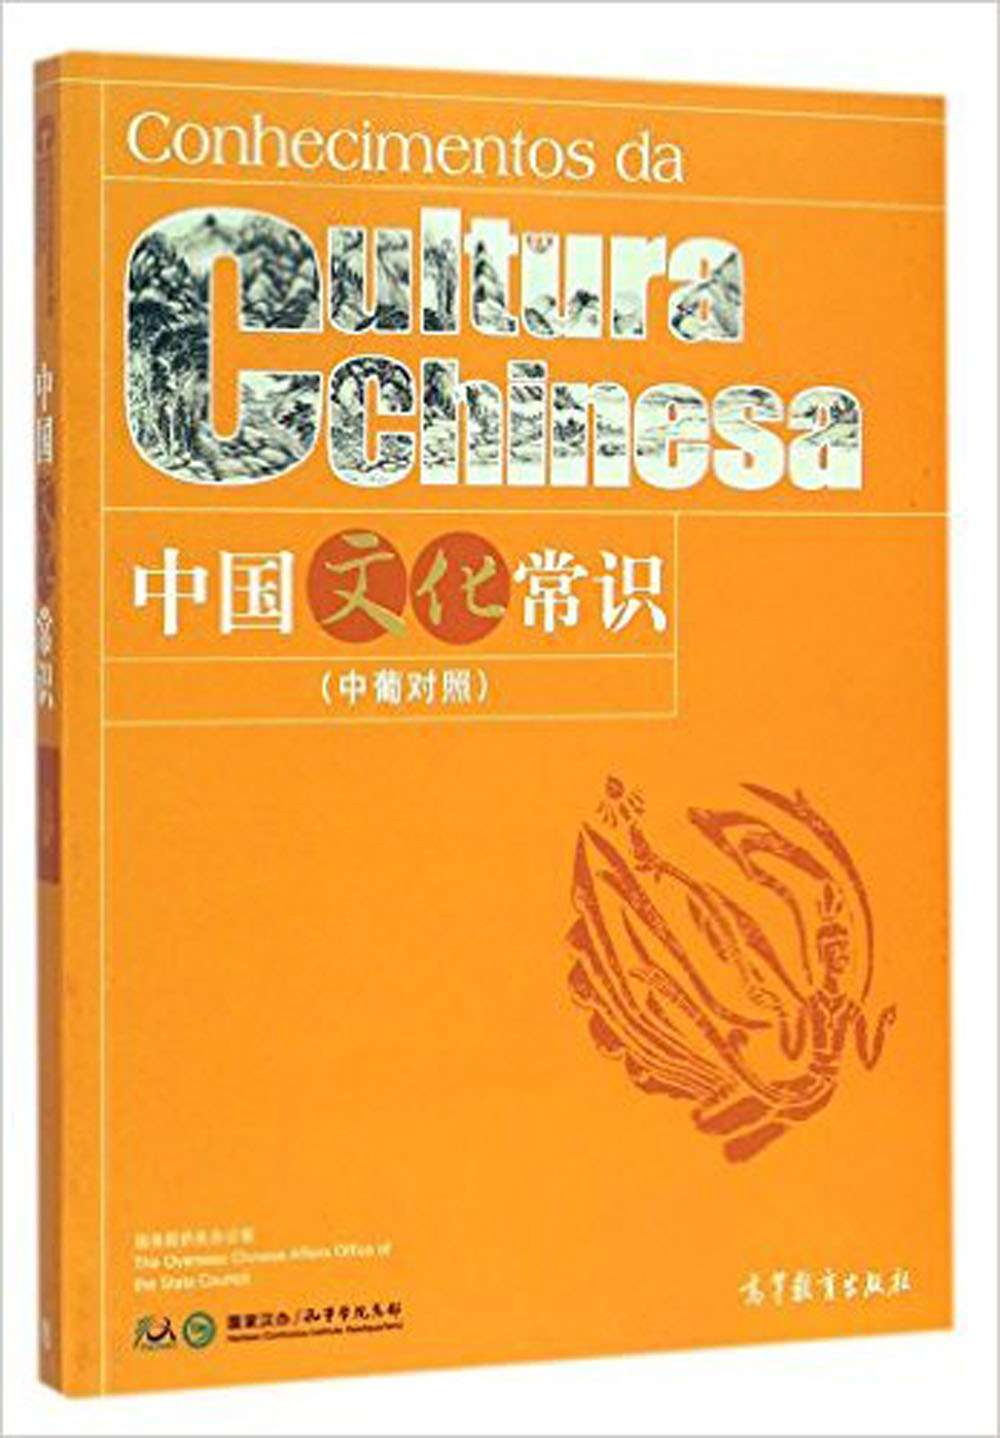 Common Knowledge About Chinese Culture (Language In Chinese And Portuguese) 281 Page For Adult Learn Chinese Culture